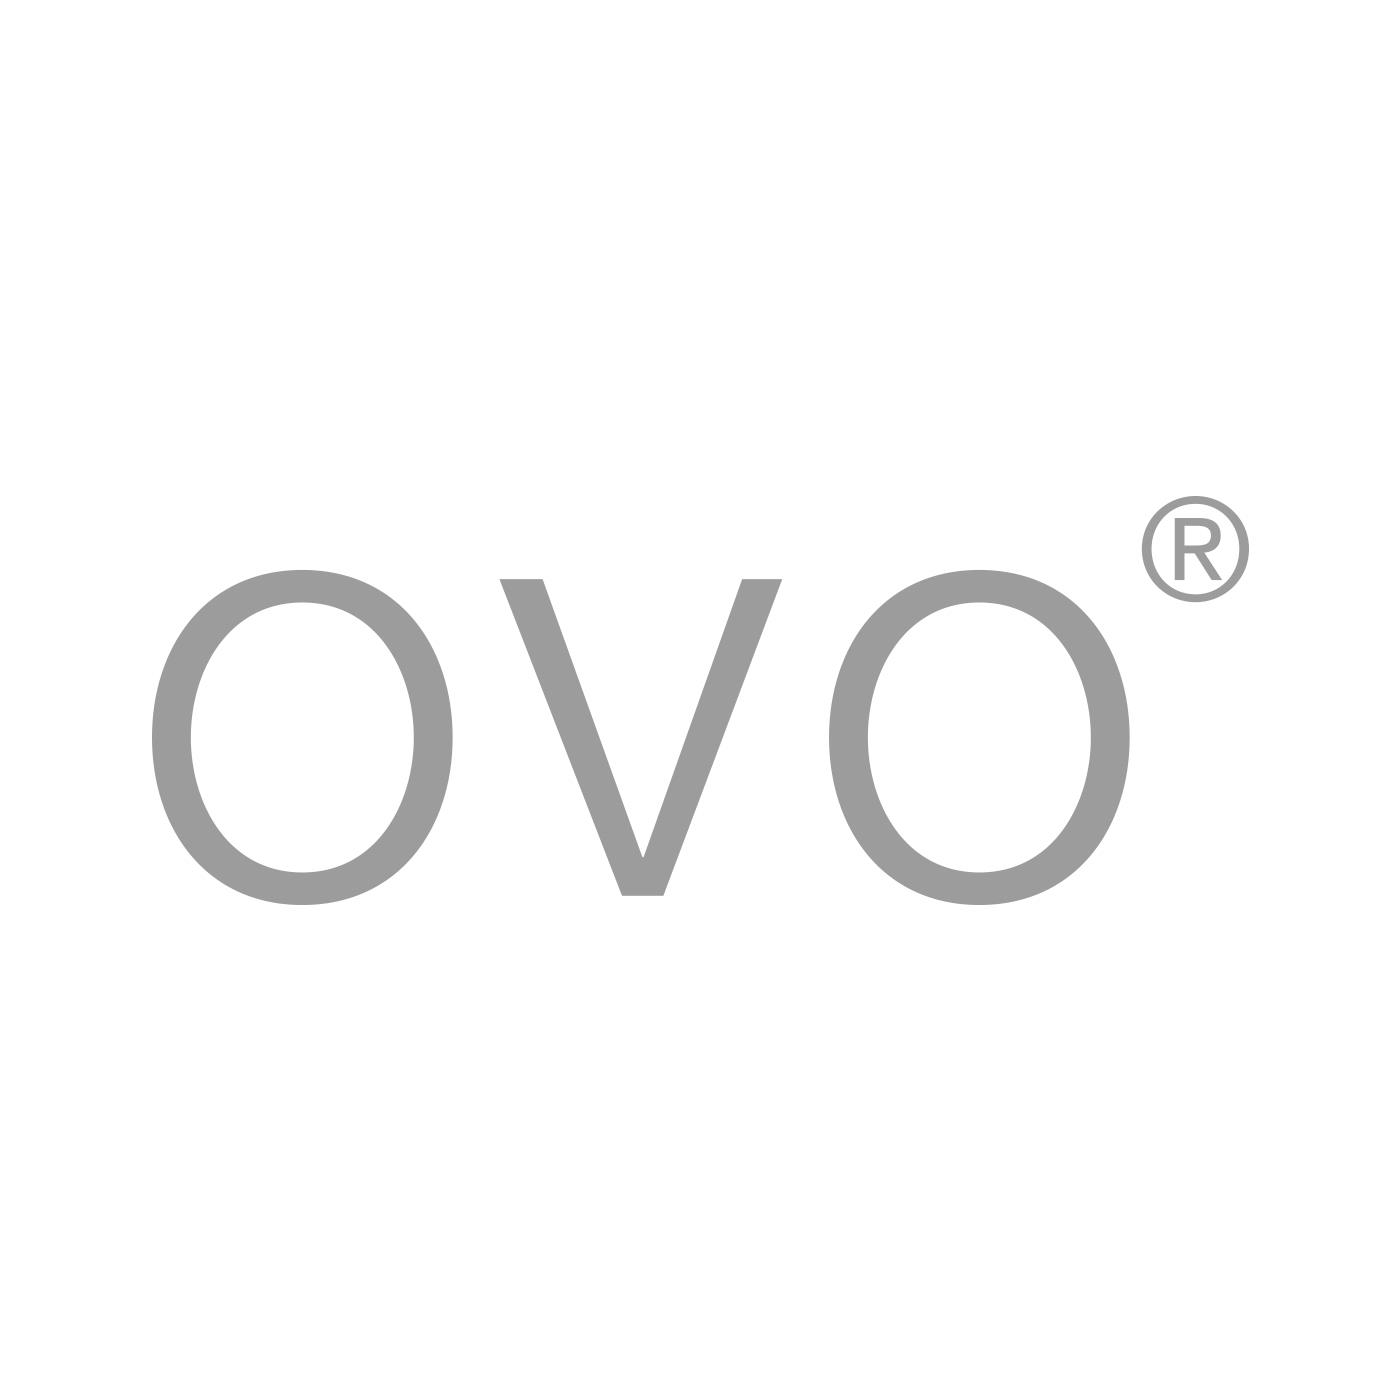 ovo casino wikipedia